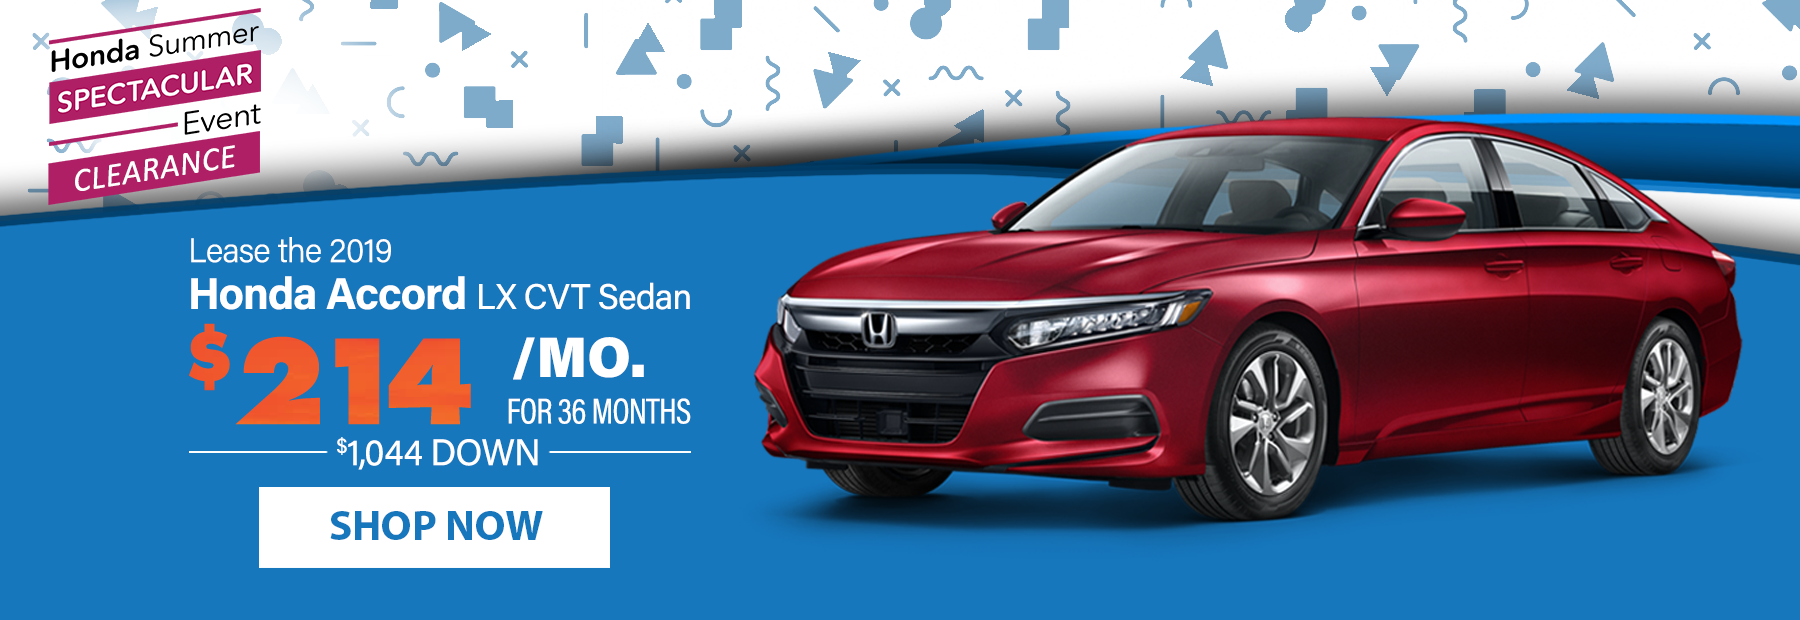 Performance Honda New Honda Sales Service Route 4 In Fairfield Oh